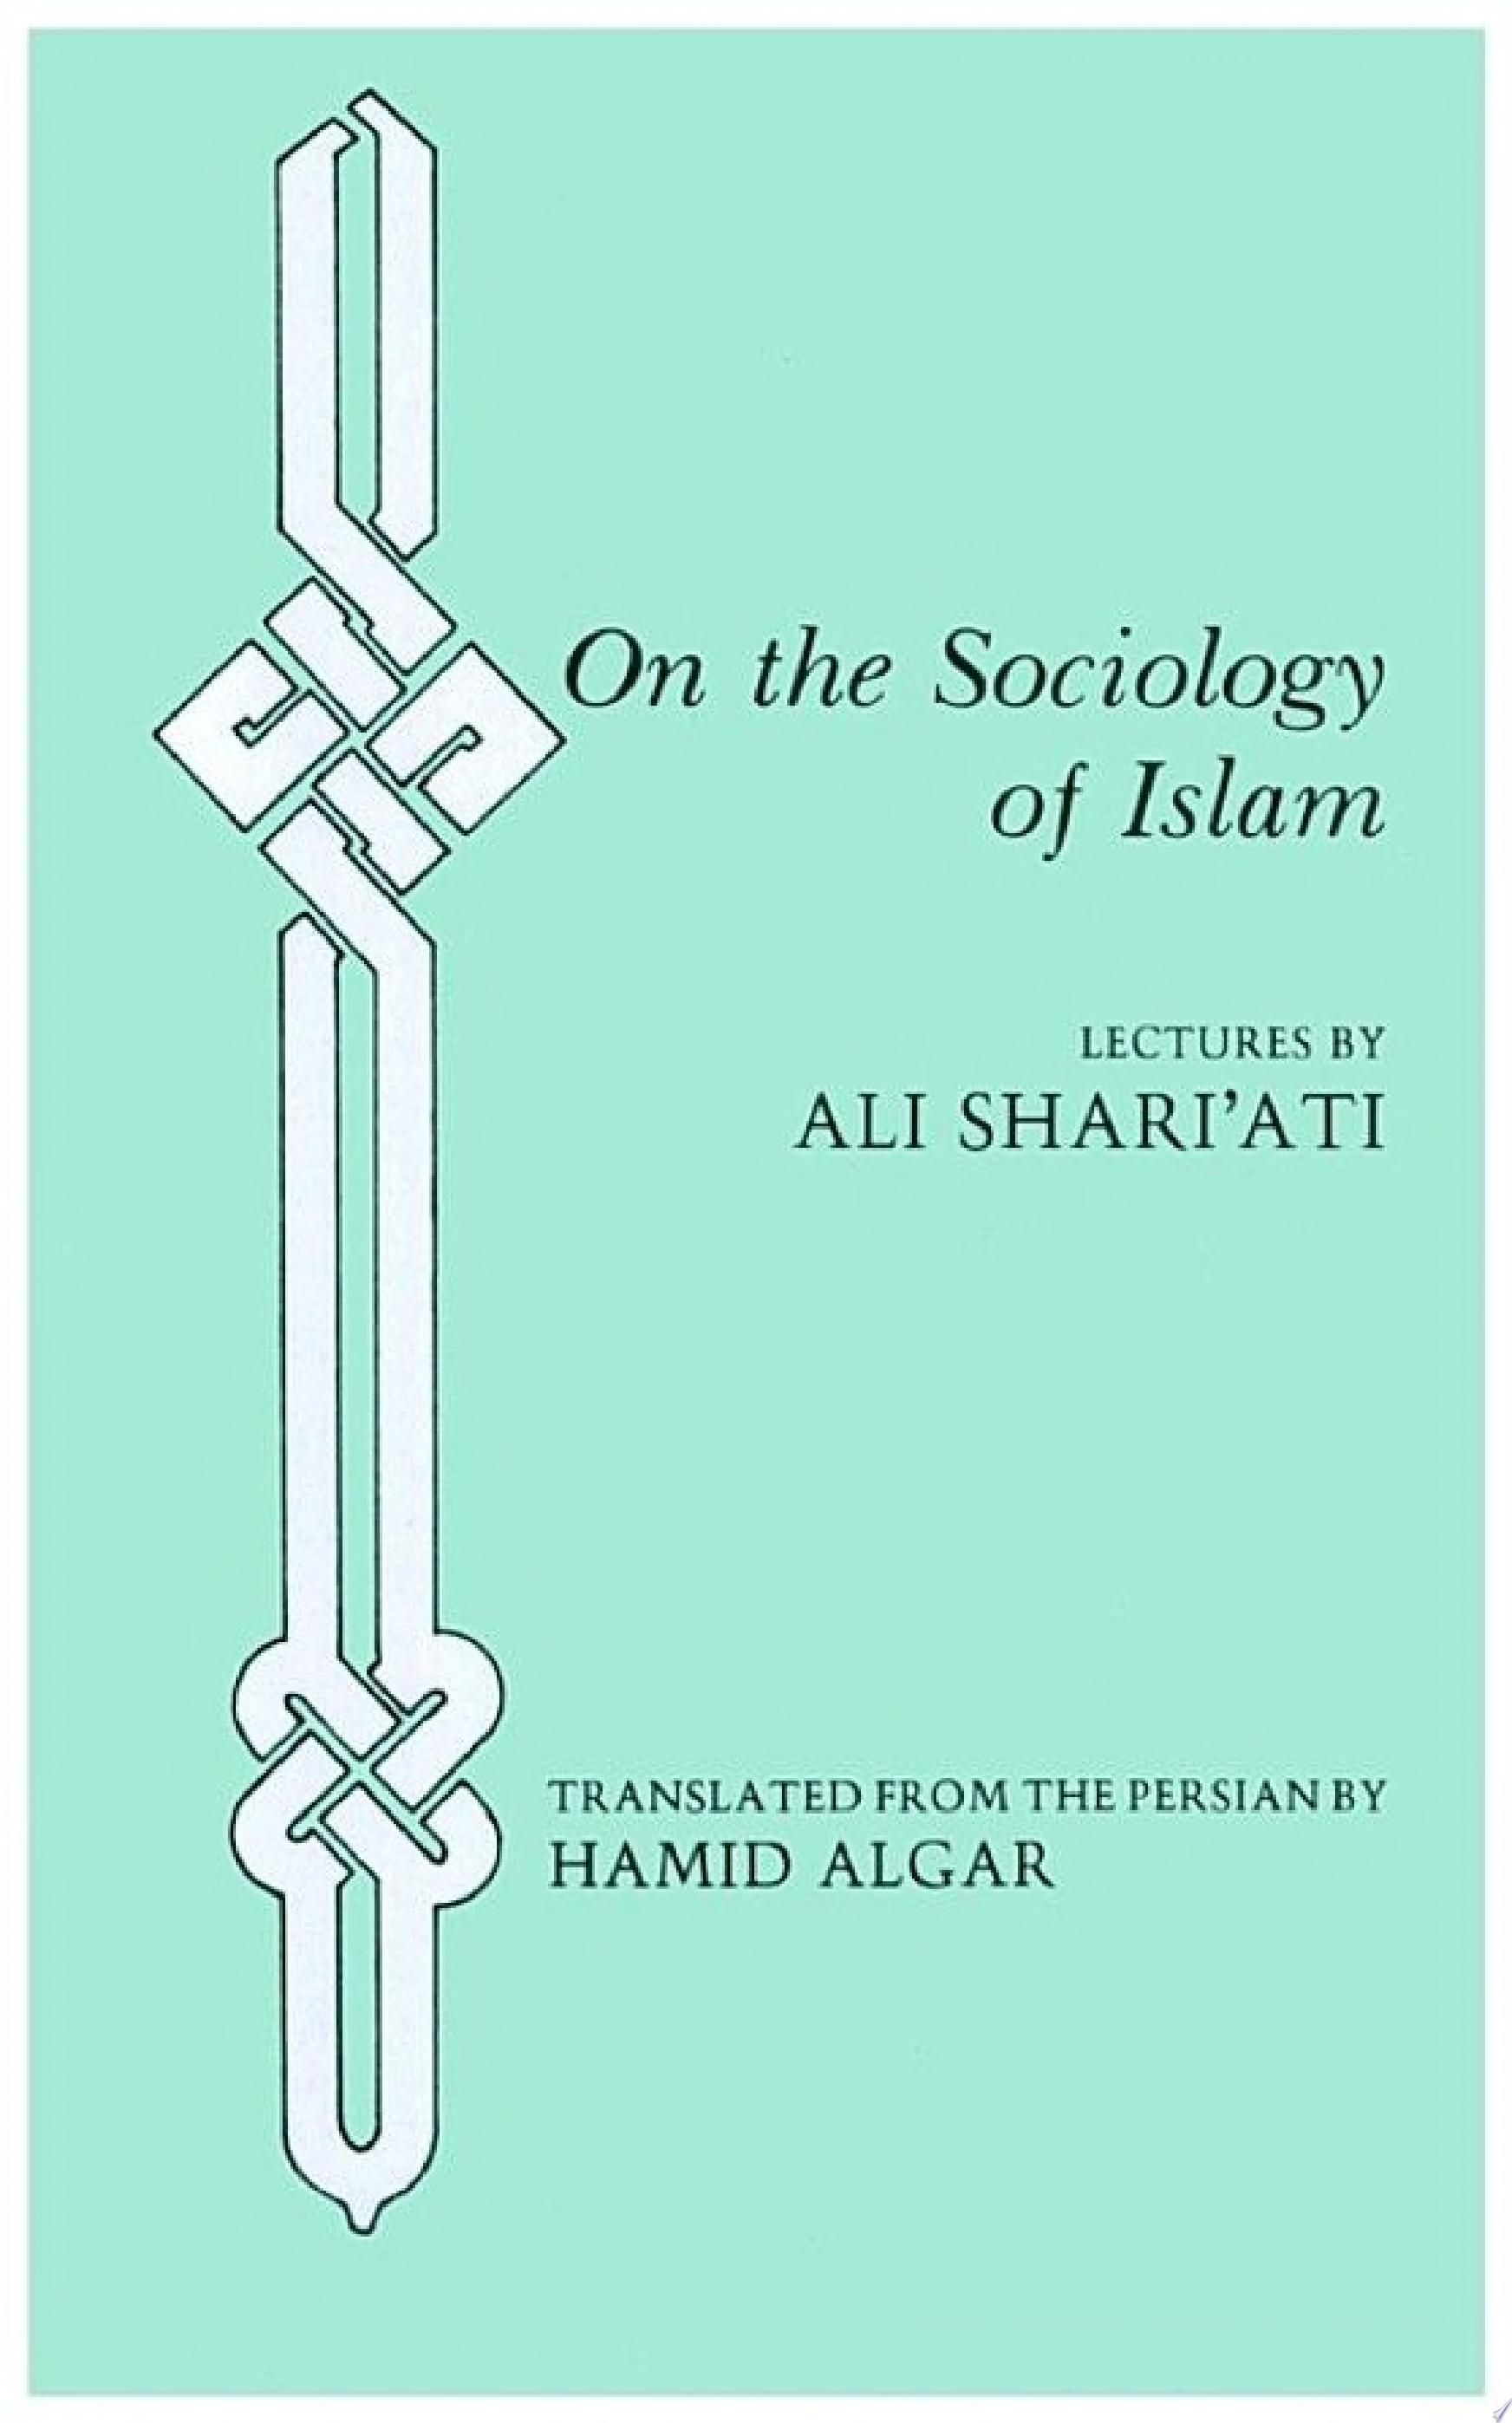 On the Sociology of Islam